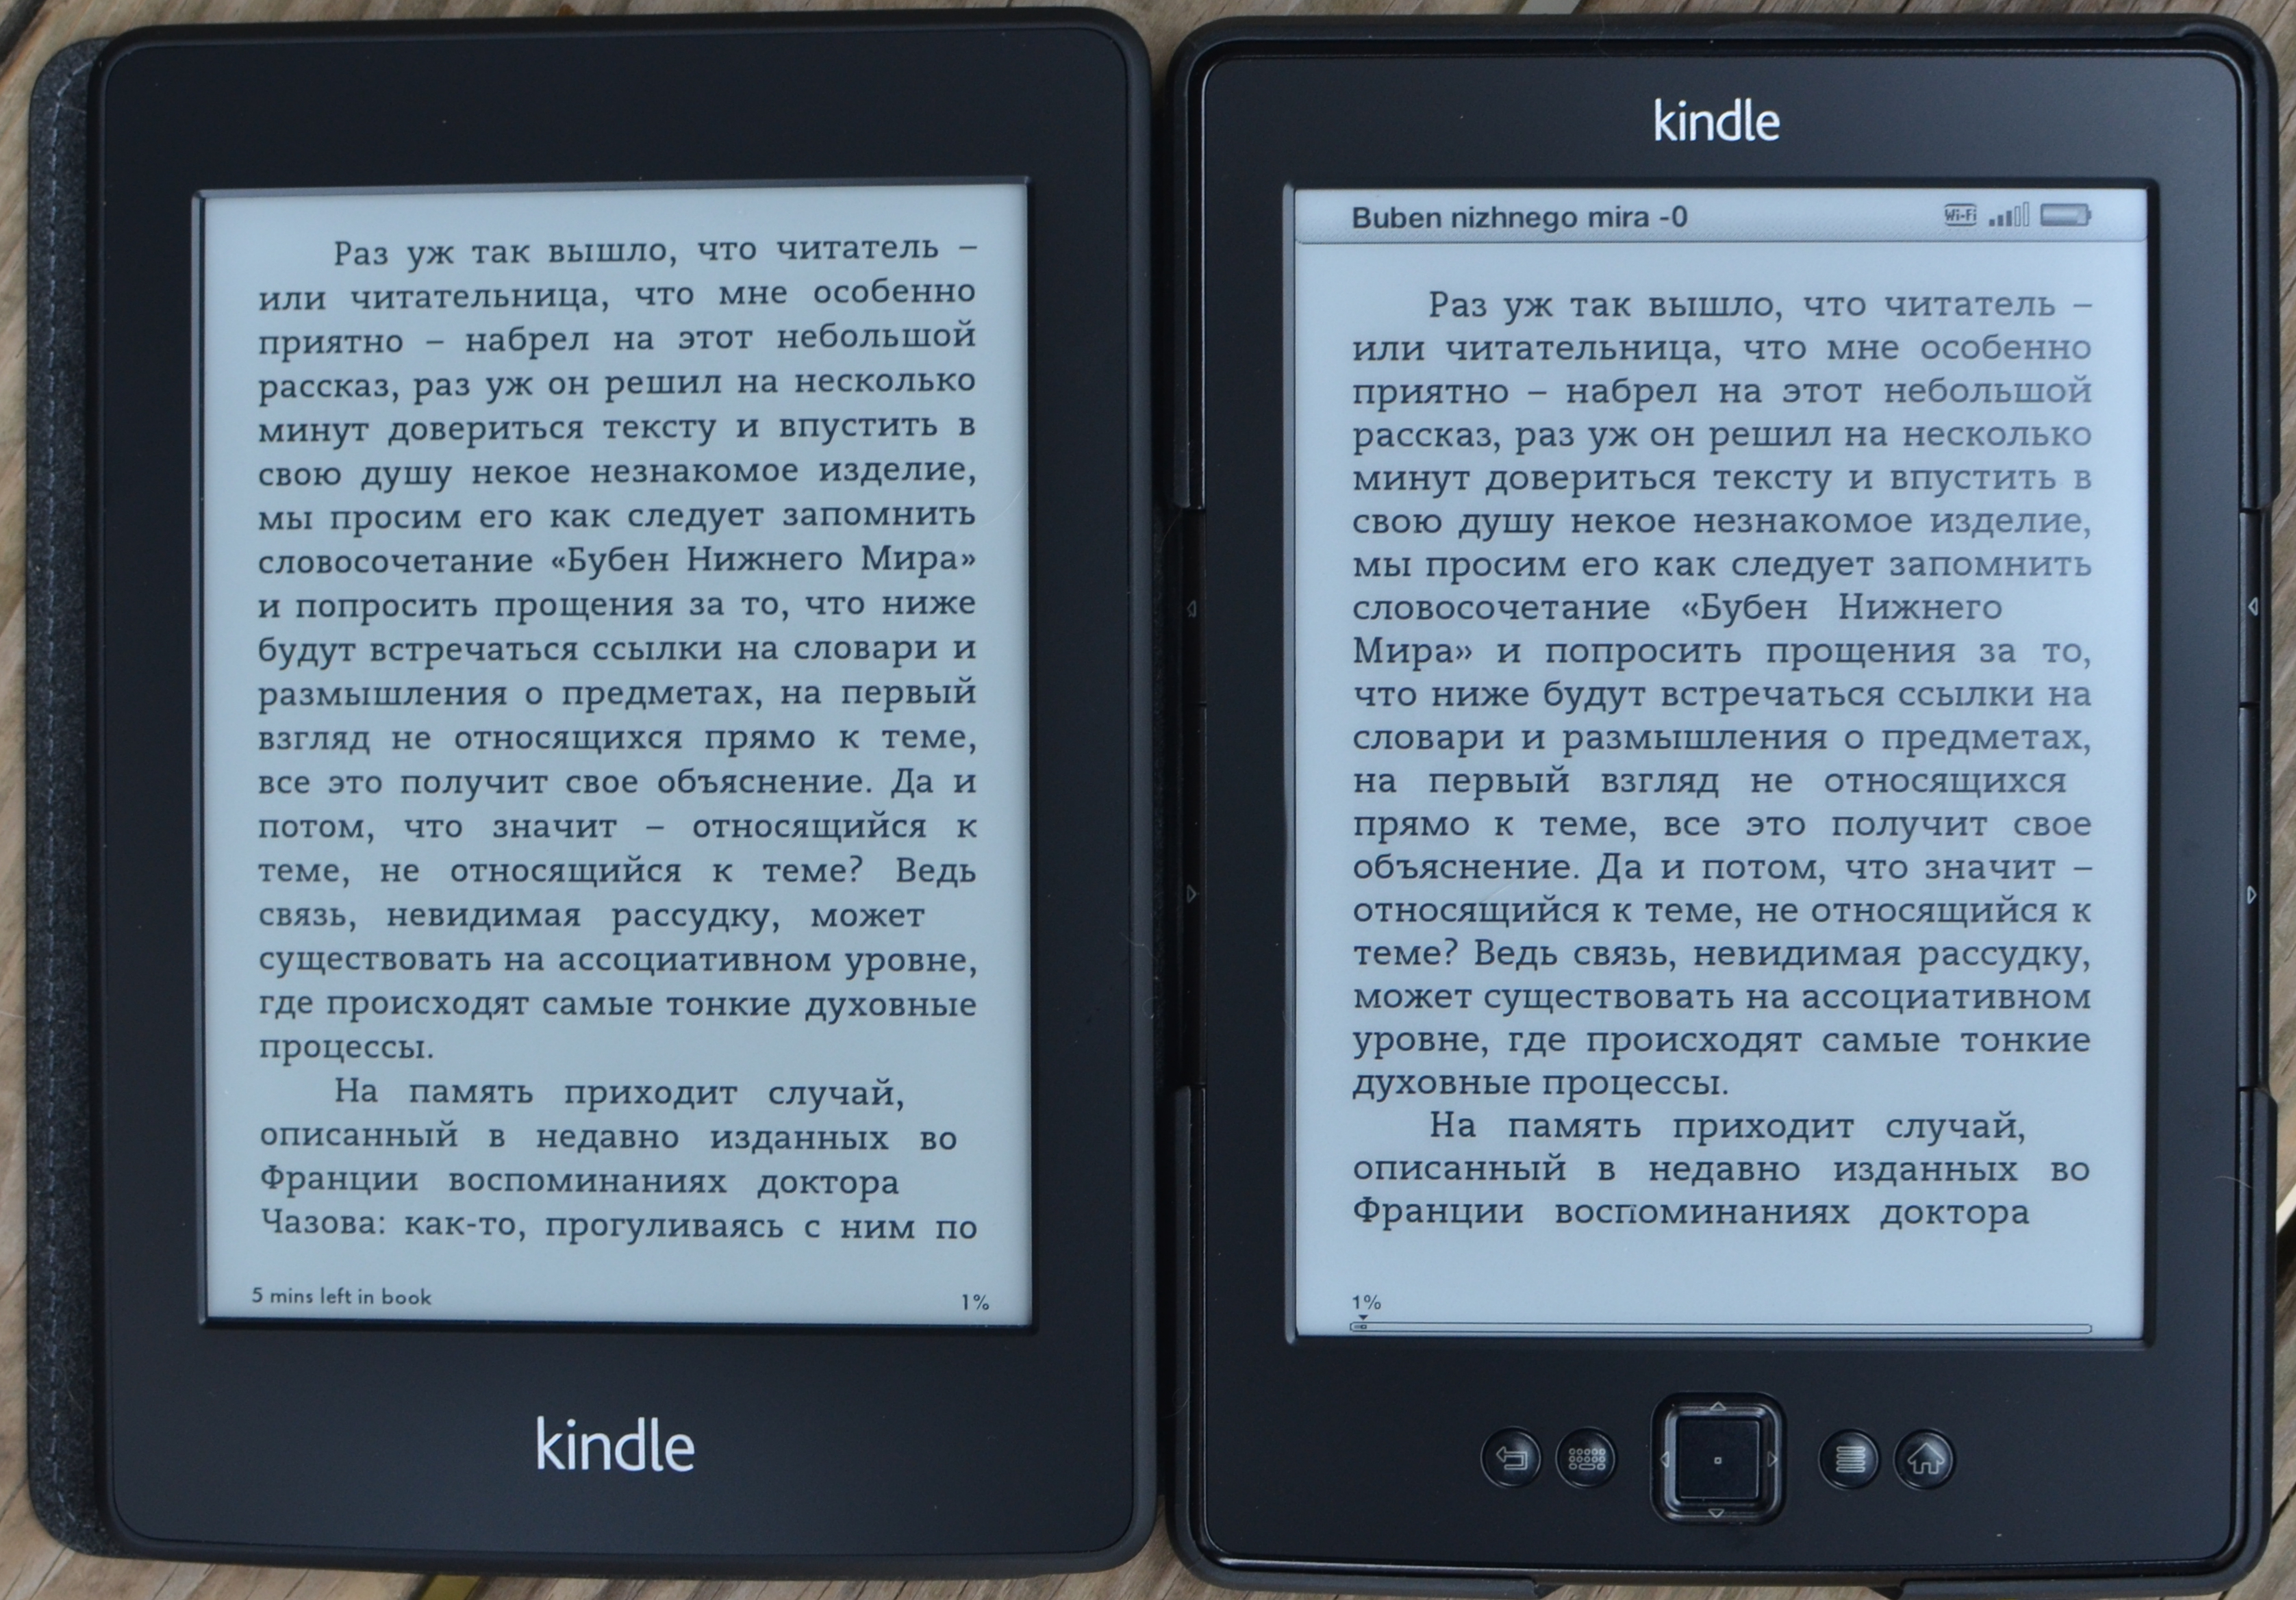 Amazon announcing kindle fire 2 in early september?